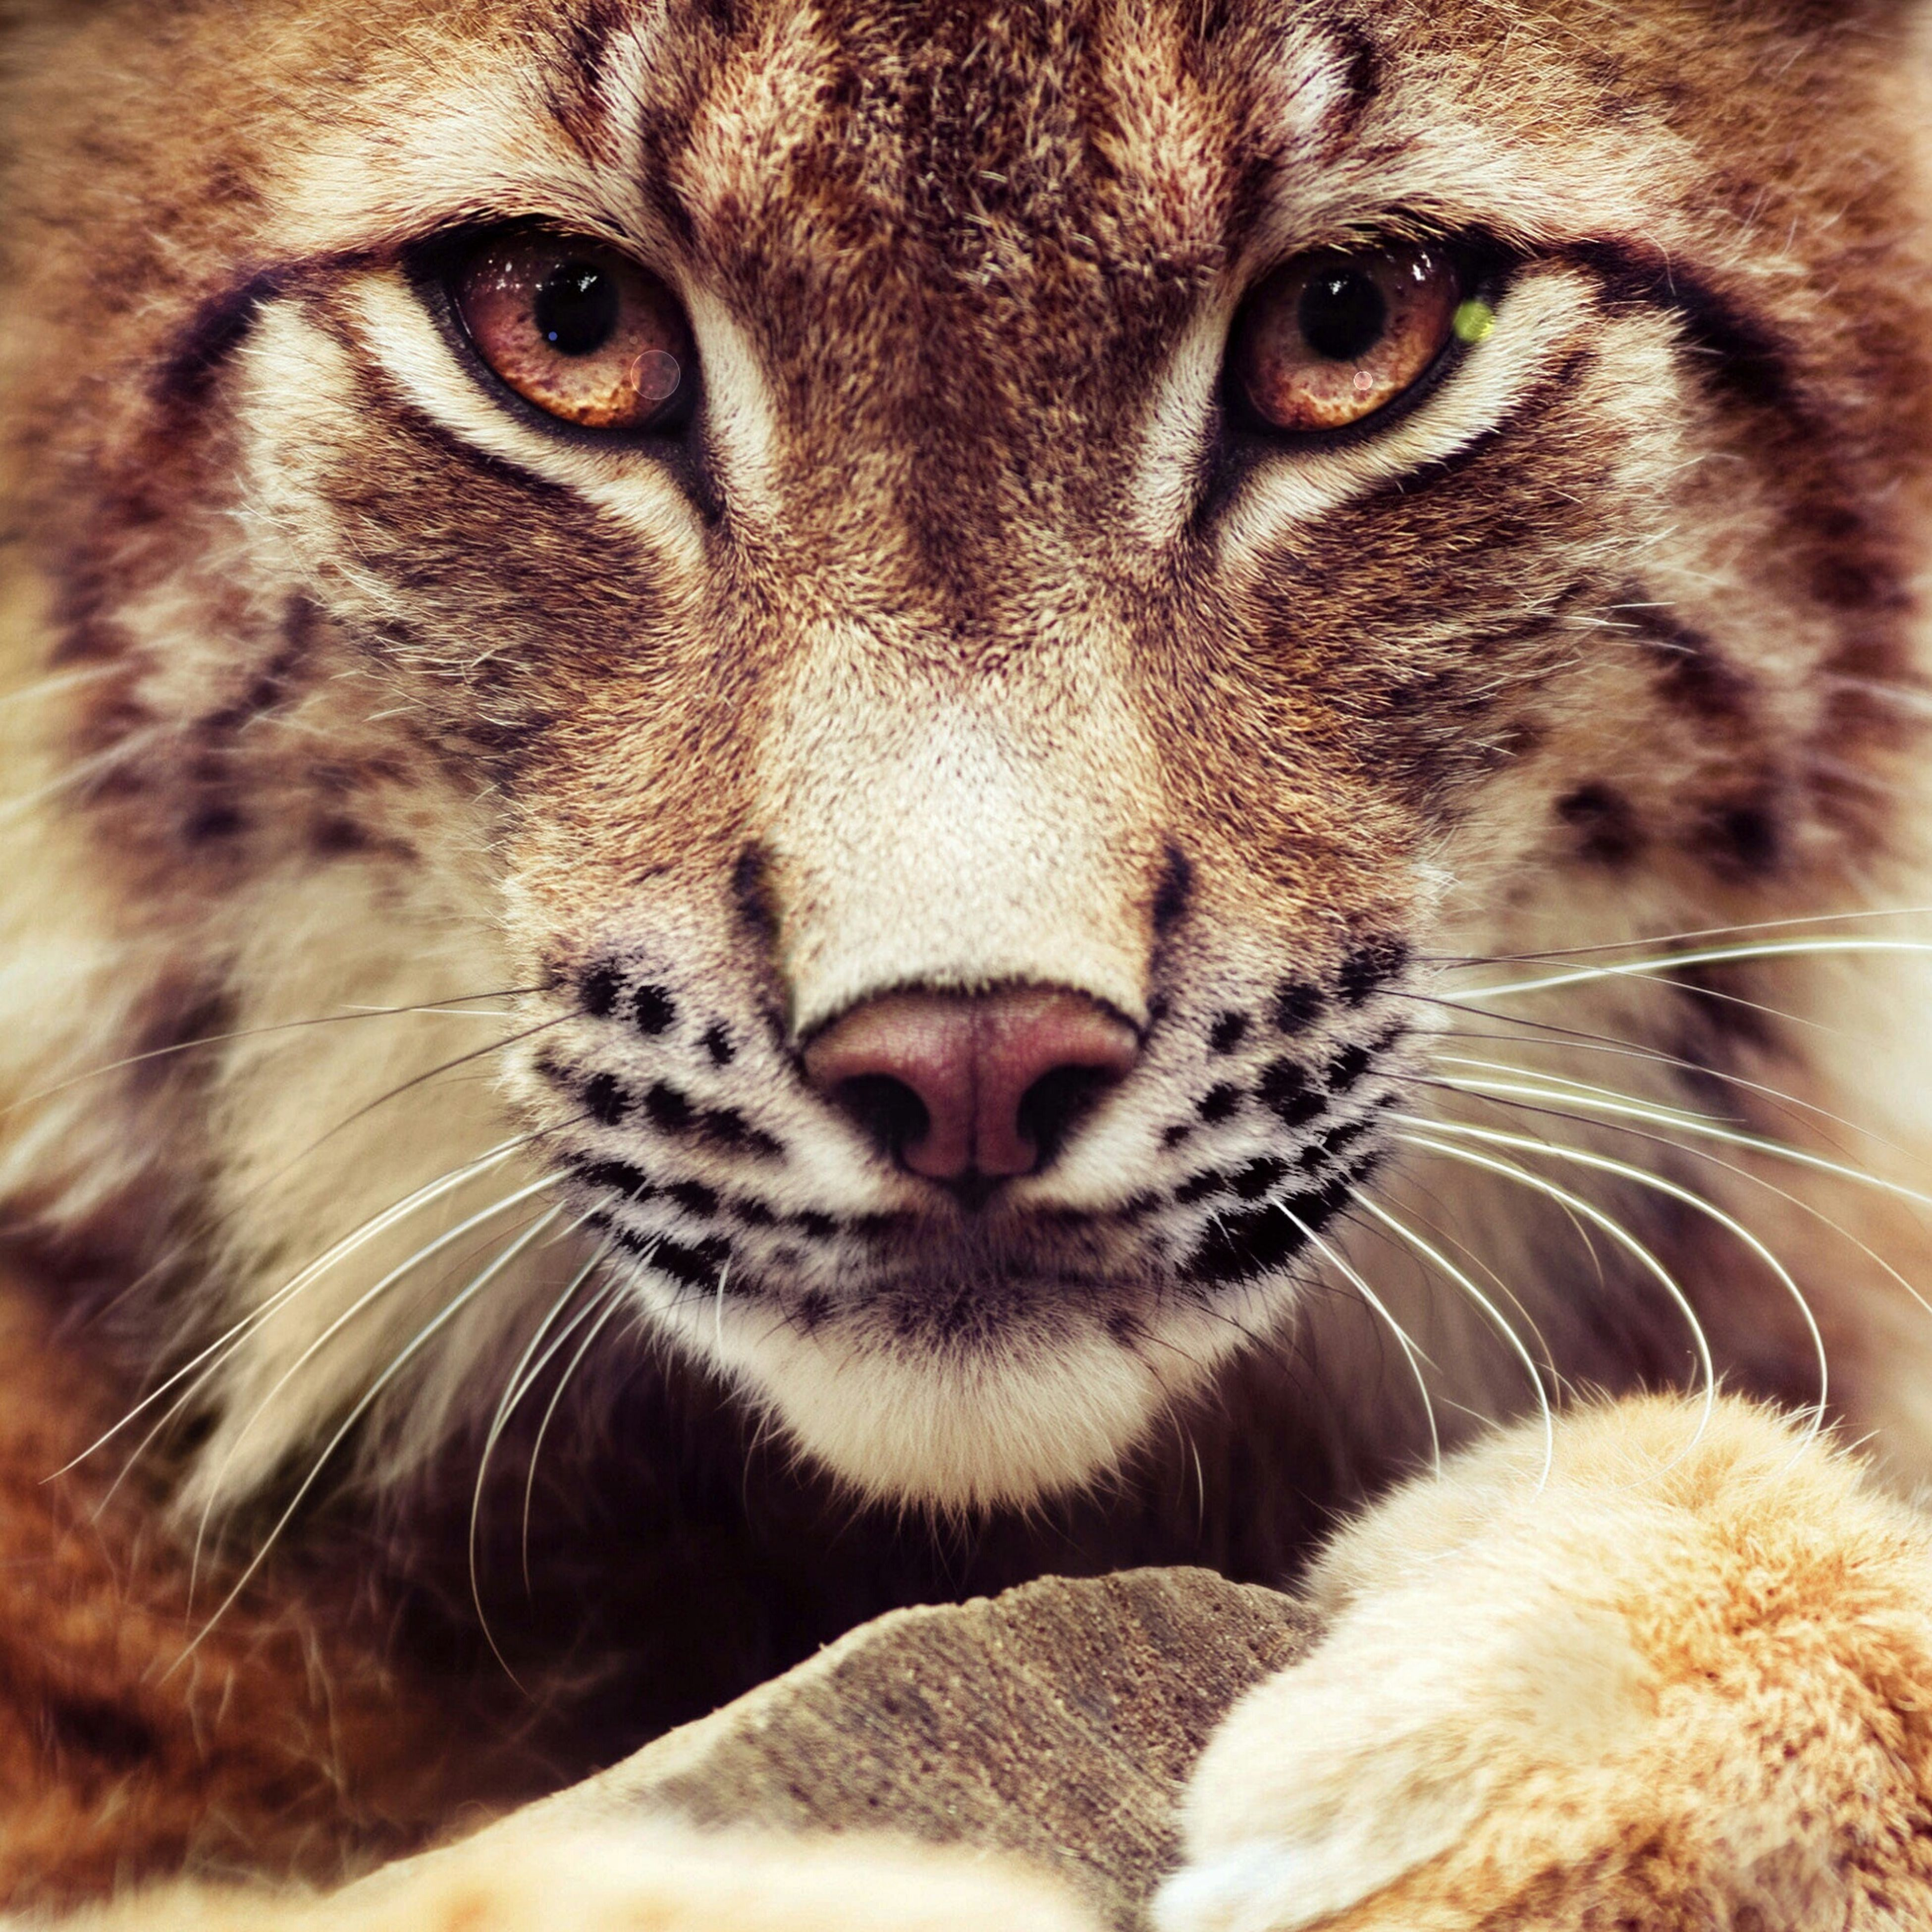 animal themes, one animal, mammal, domestic animals, pets, animal head, close-up, whisker, animal body part, portrait, domestic cat, animal eye, feline, looking at camera, animal nose, cat, focus on foreground, snout, indoors, part of